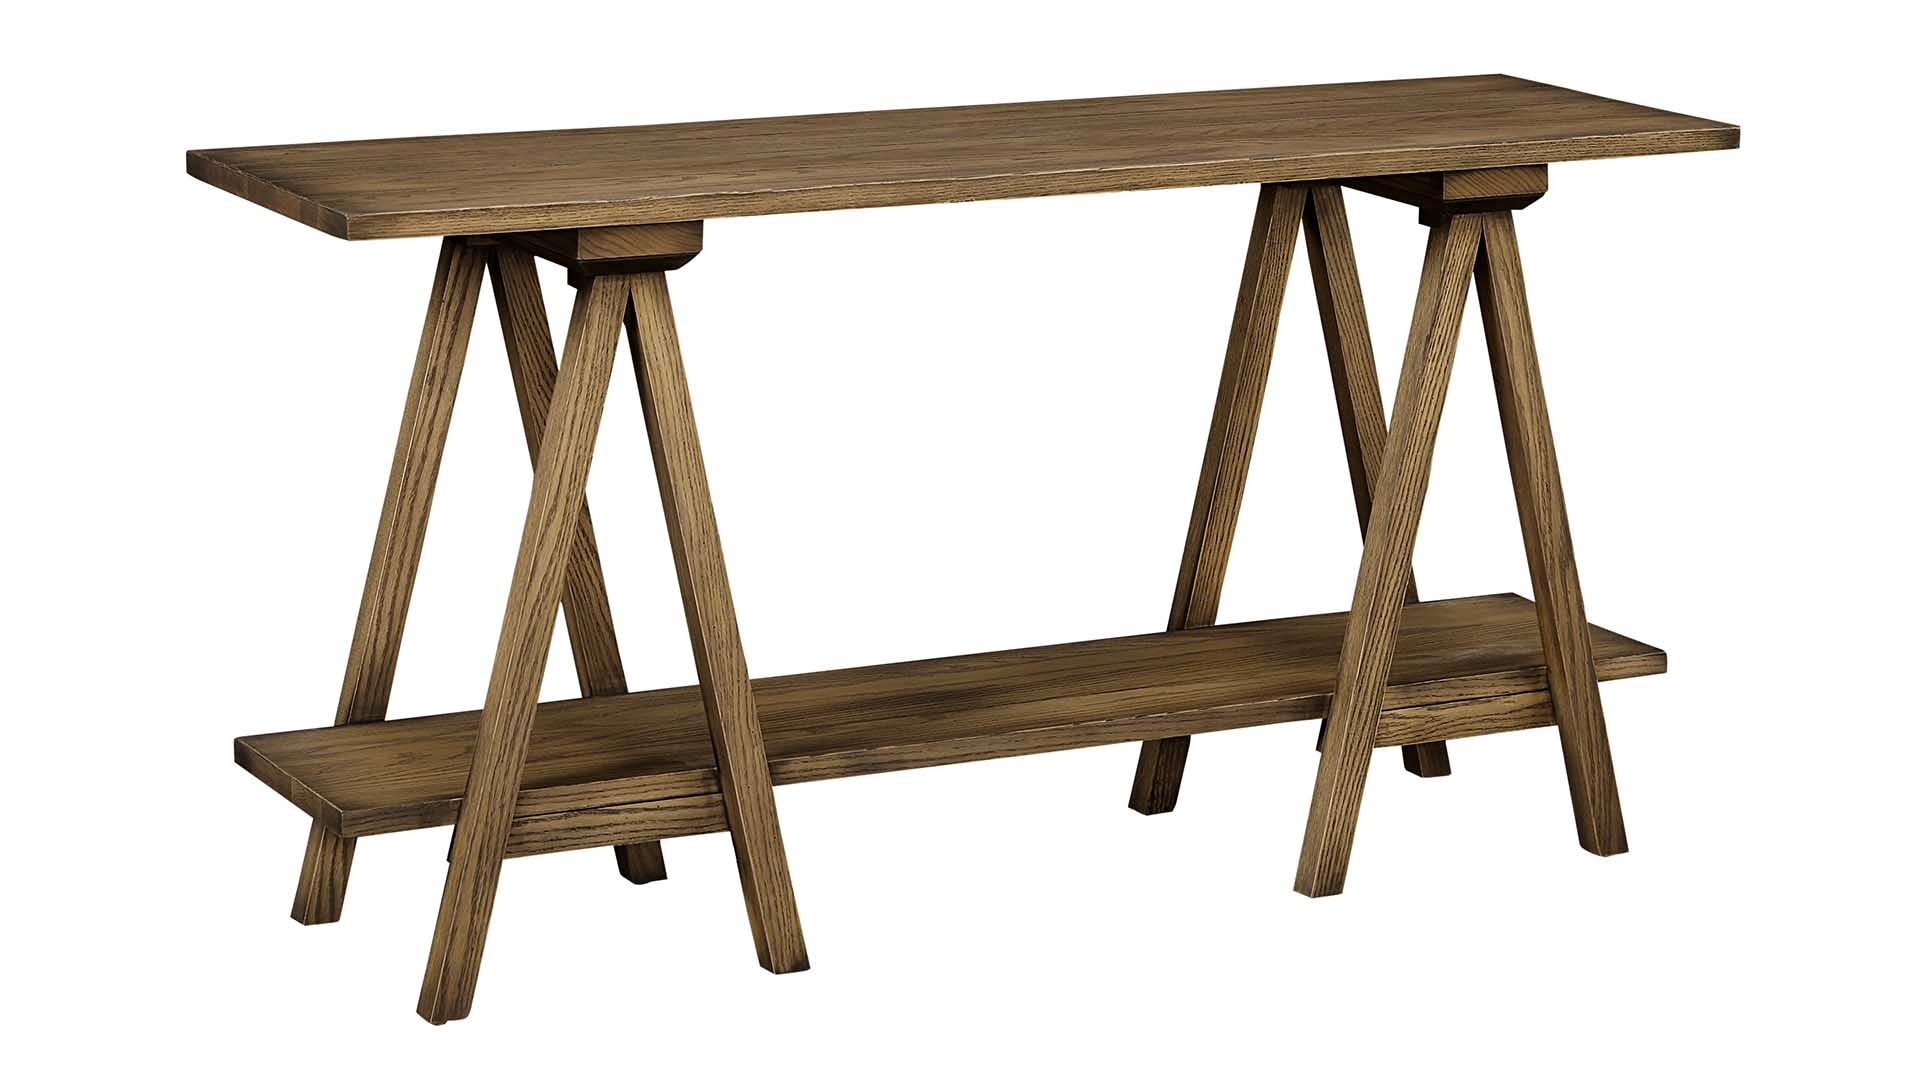 Local Harvest Plank Top Table